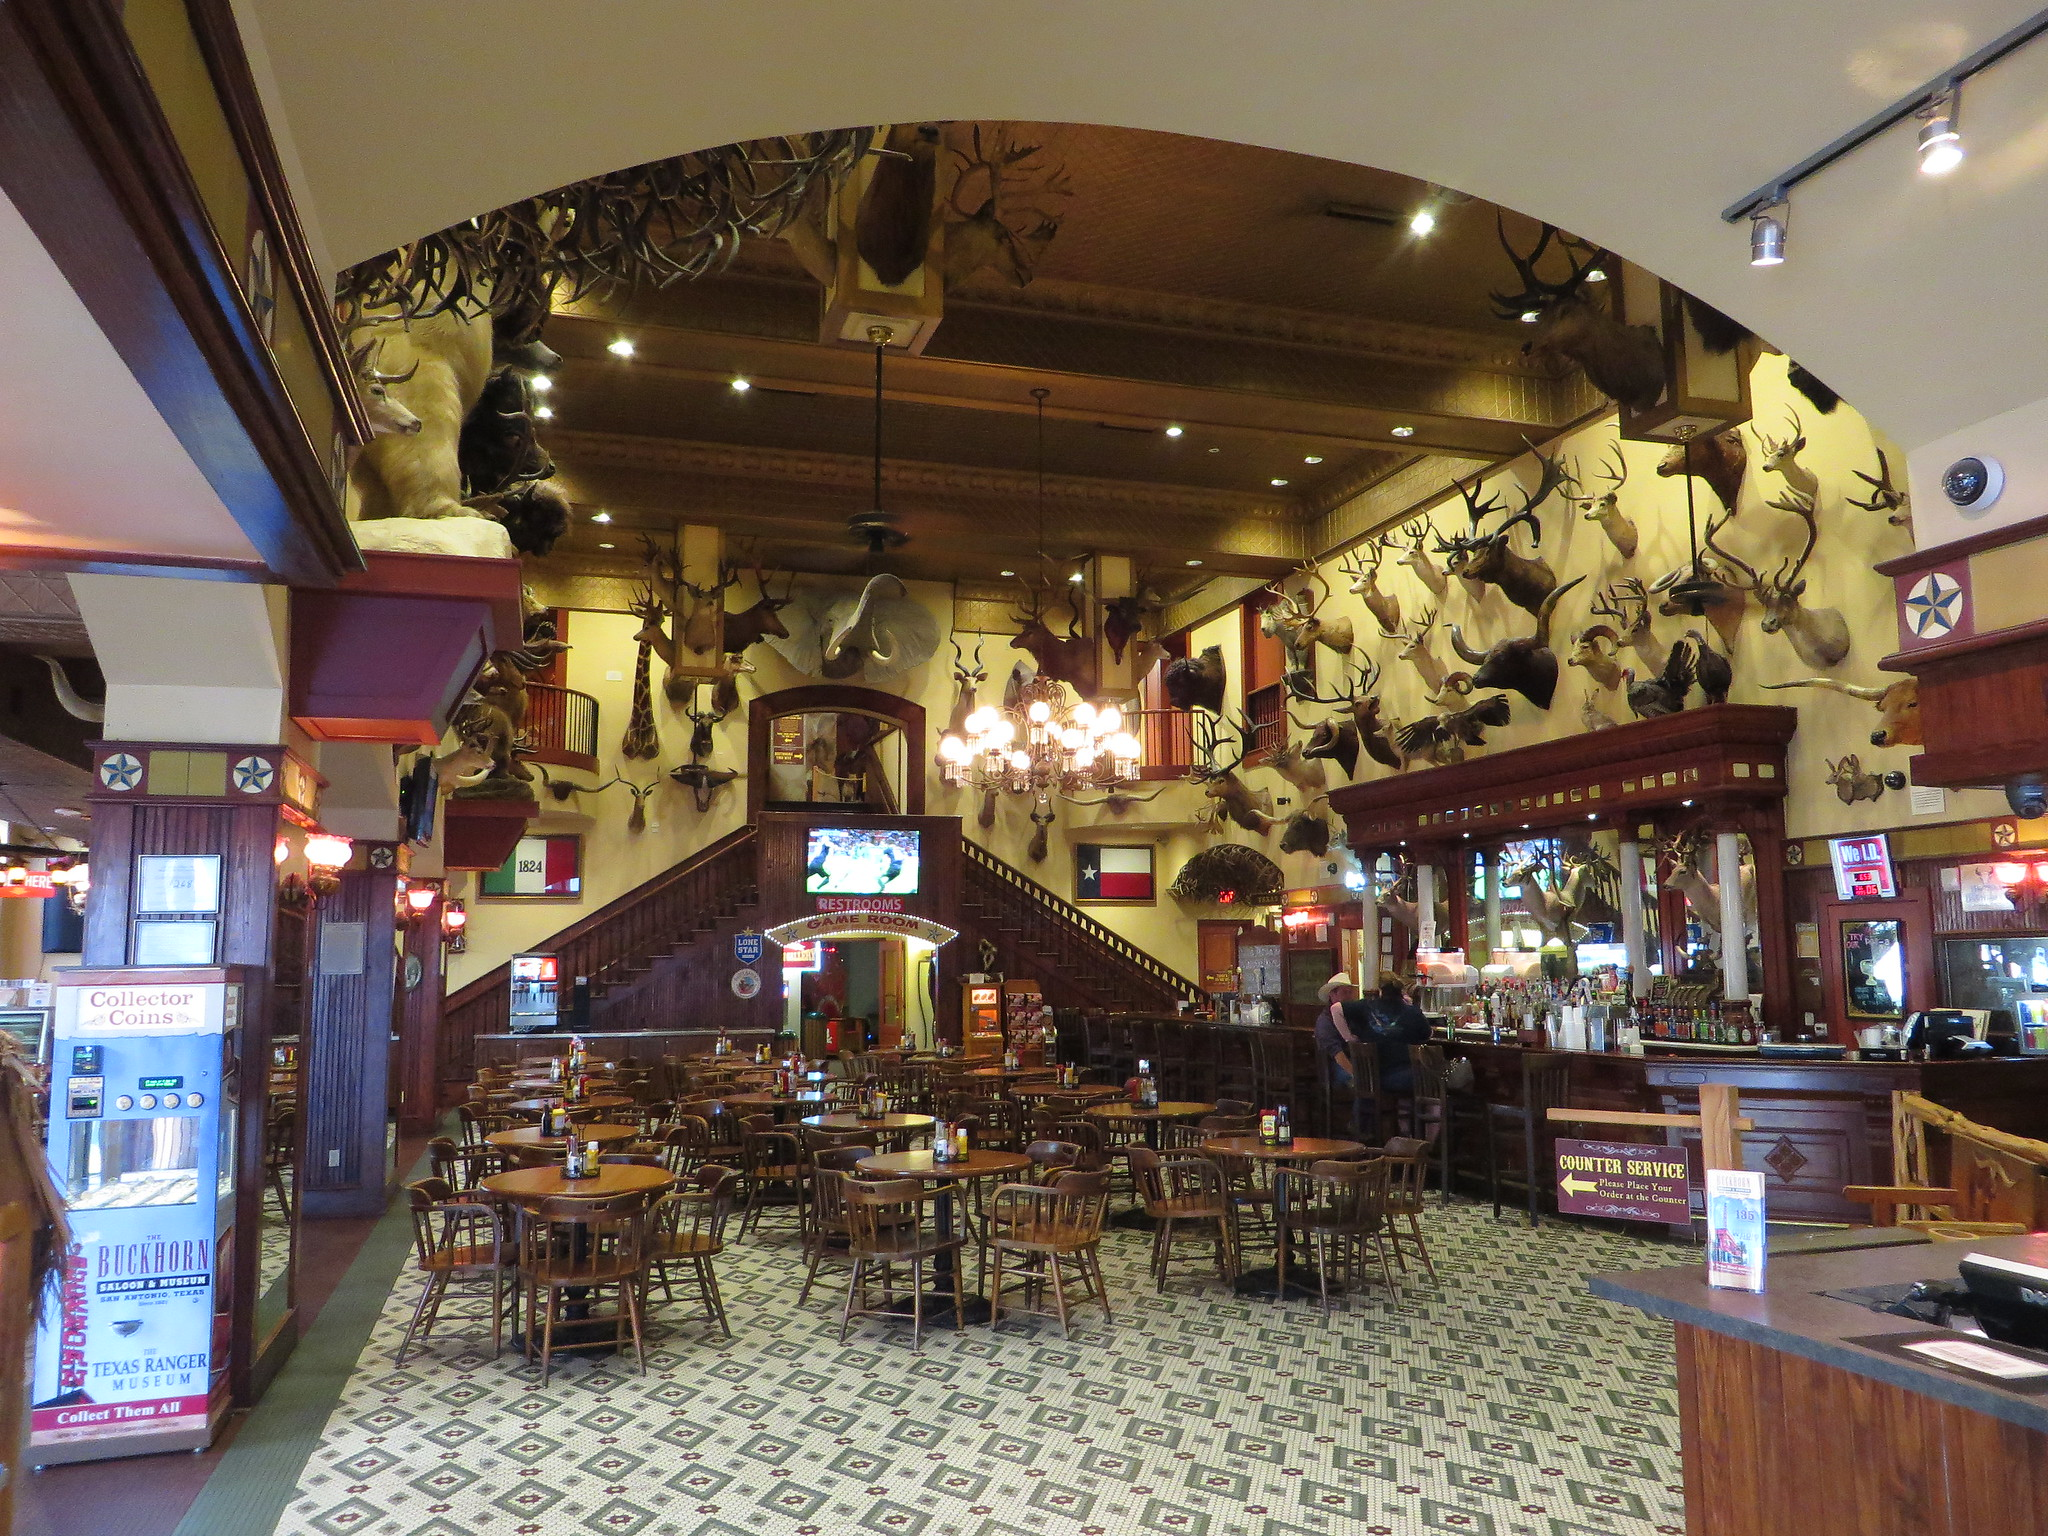 Famous Museum in San Antonio-The Buckhorn Saloon and Museum